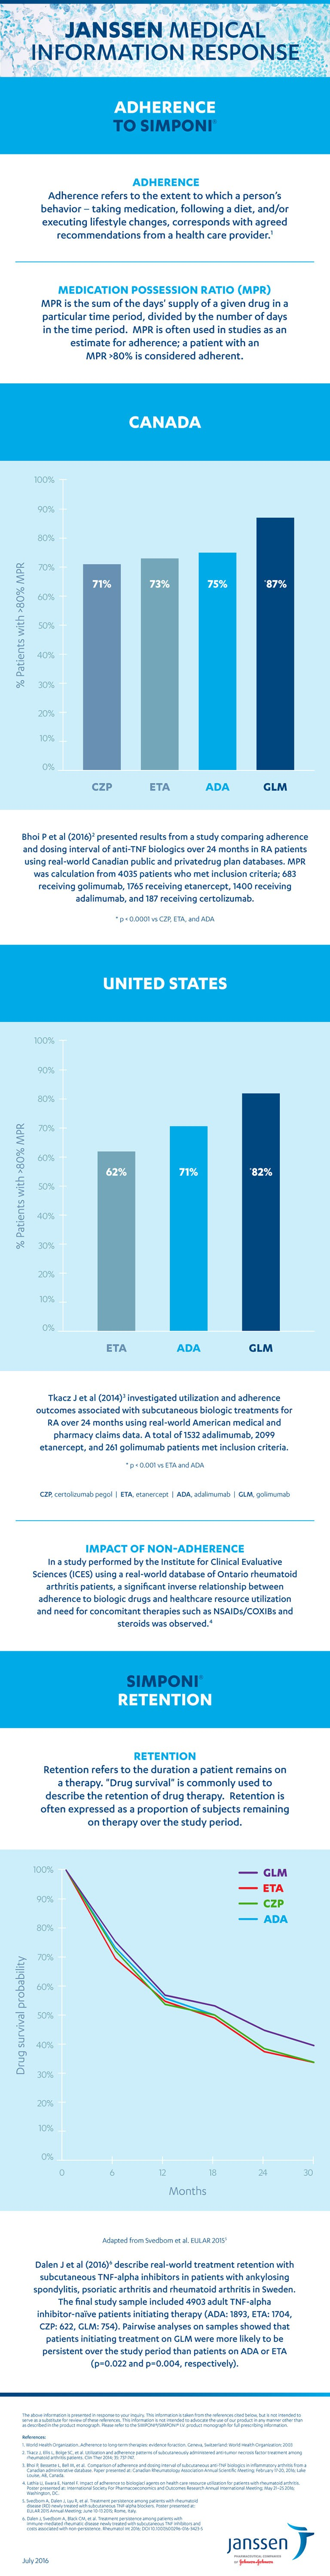 SIMPONI® (golimumab) Adherence and Retention